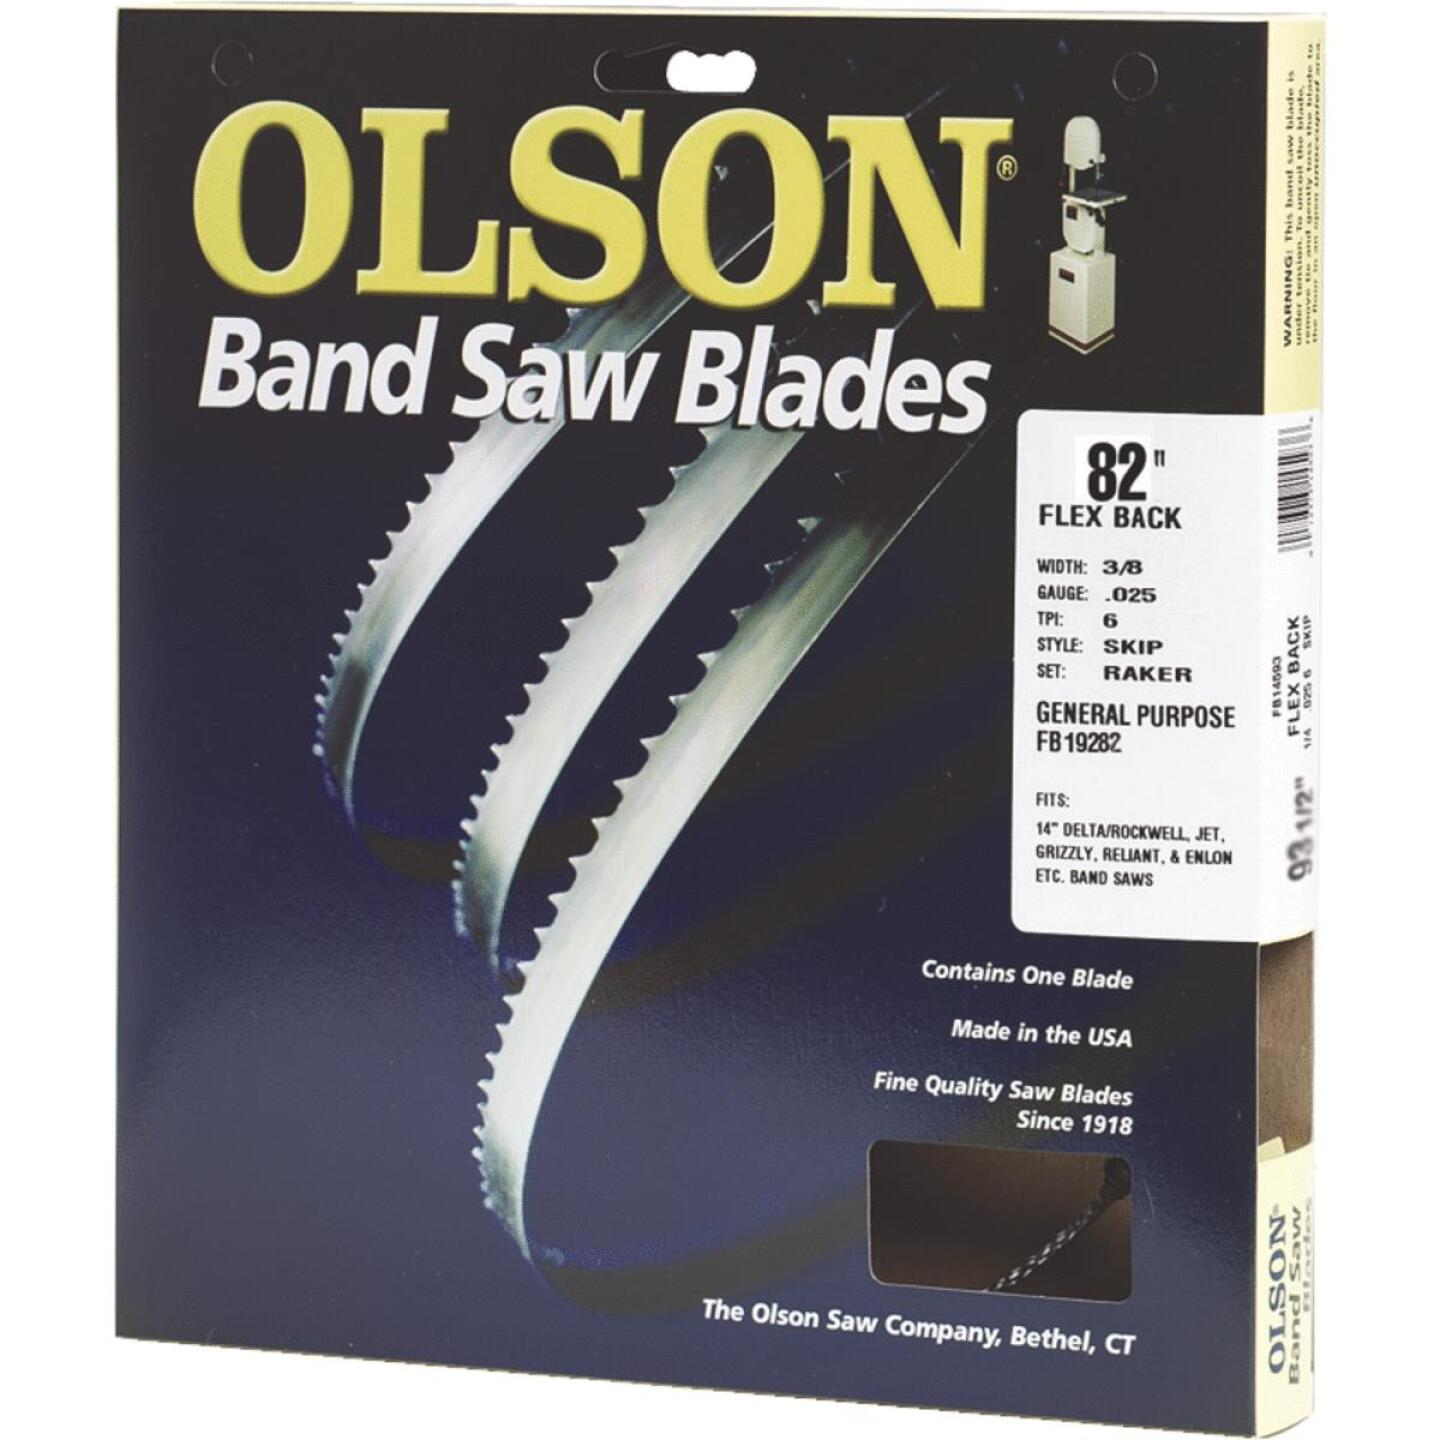 Olson 82 In. x 3/8 In. 4 TPI Skip Flex Back Band Saw Blade Image 1